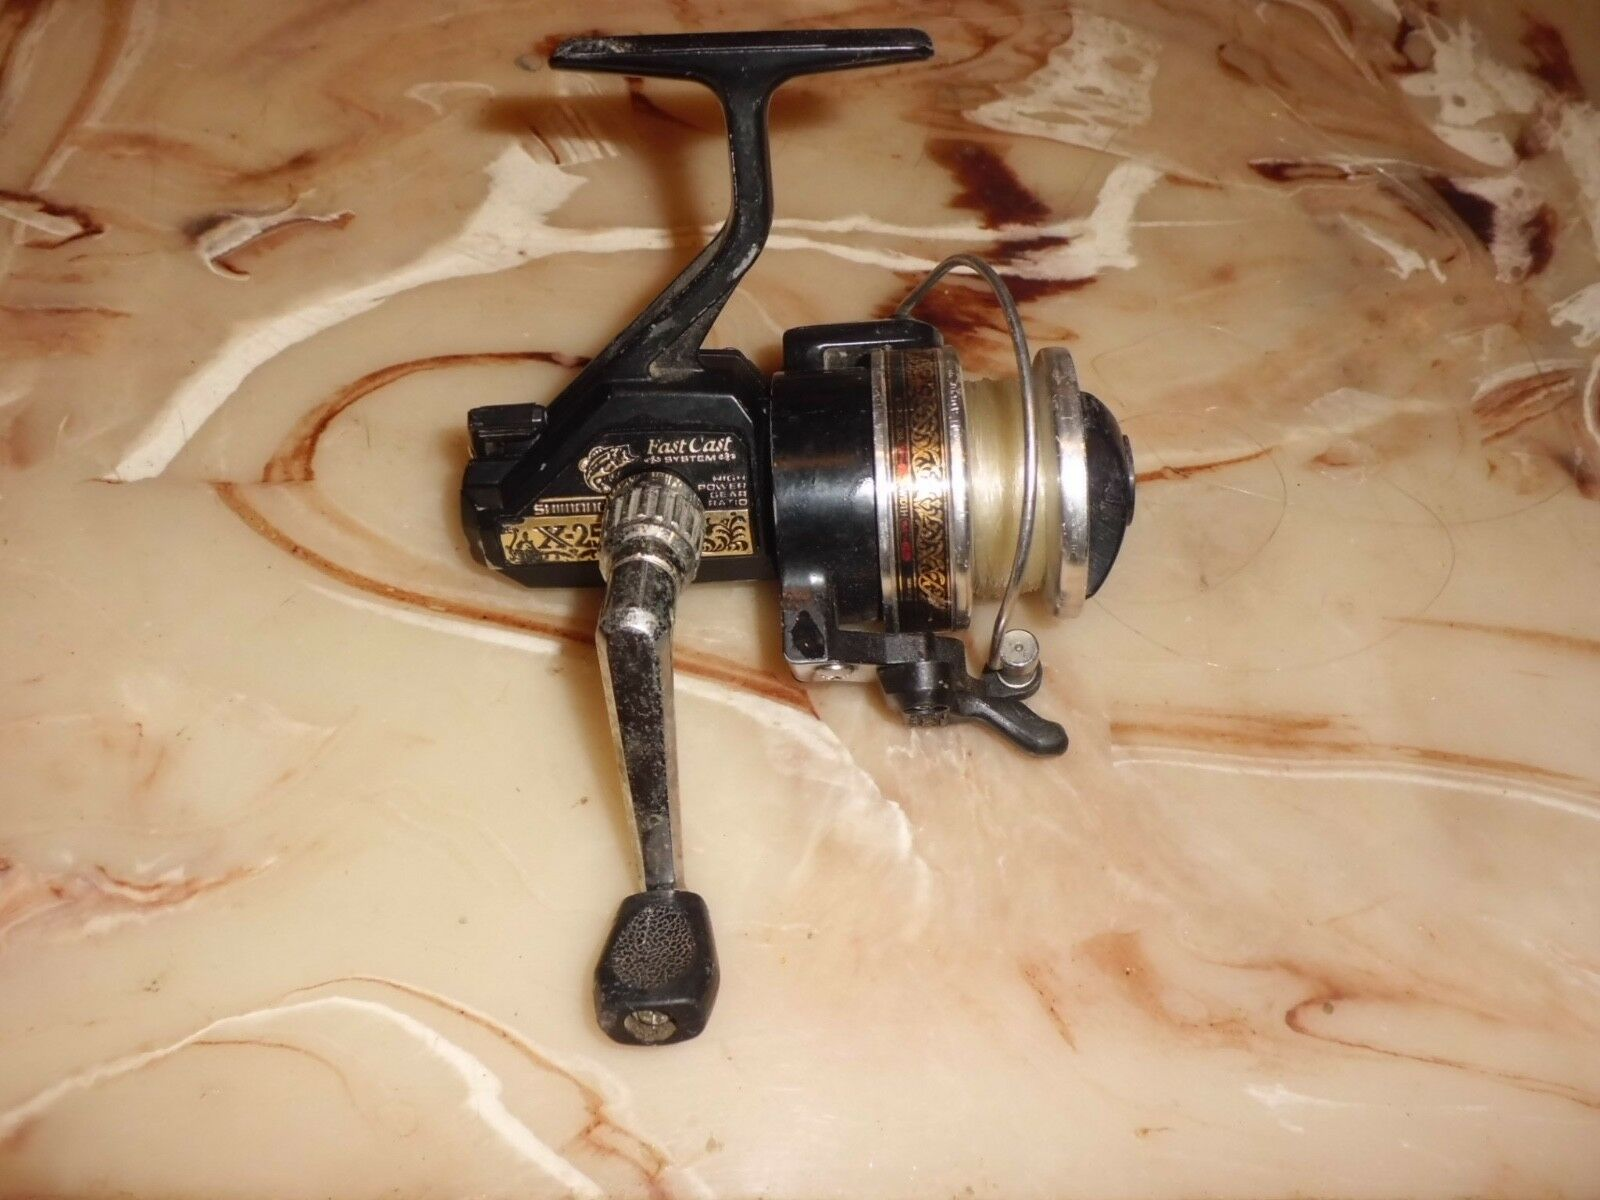 Vintage Shimano X-25 Fast Cast Spinning Reel made in Japan